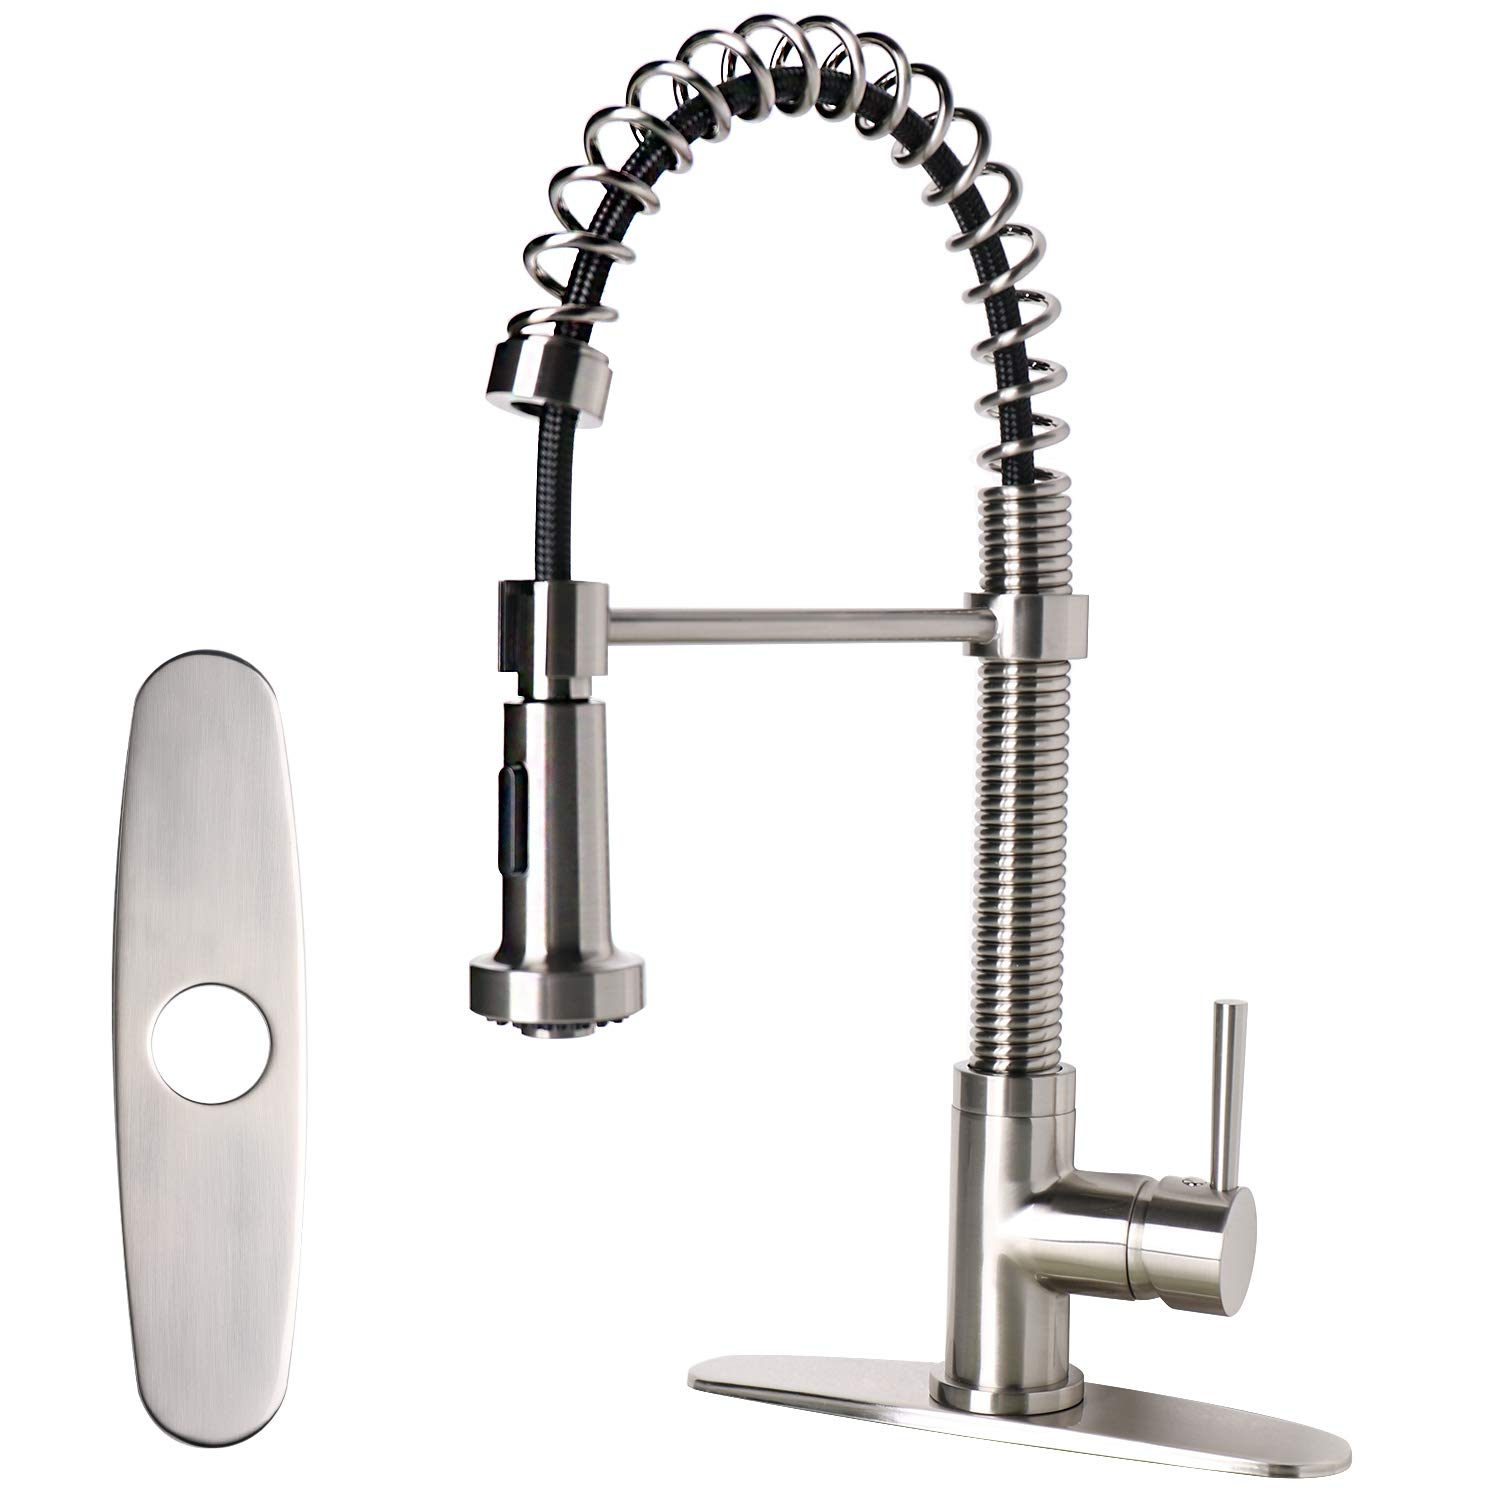 Enbol KFD503-BN Lead Free Brushed Nickel Dual Function Single Handle Lever Kitchen Faucet with Pull Out Pull Down Sprayer Spring, Solid Brass and Stainless Steel Kitchen Sink Faucet with Deck Plate